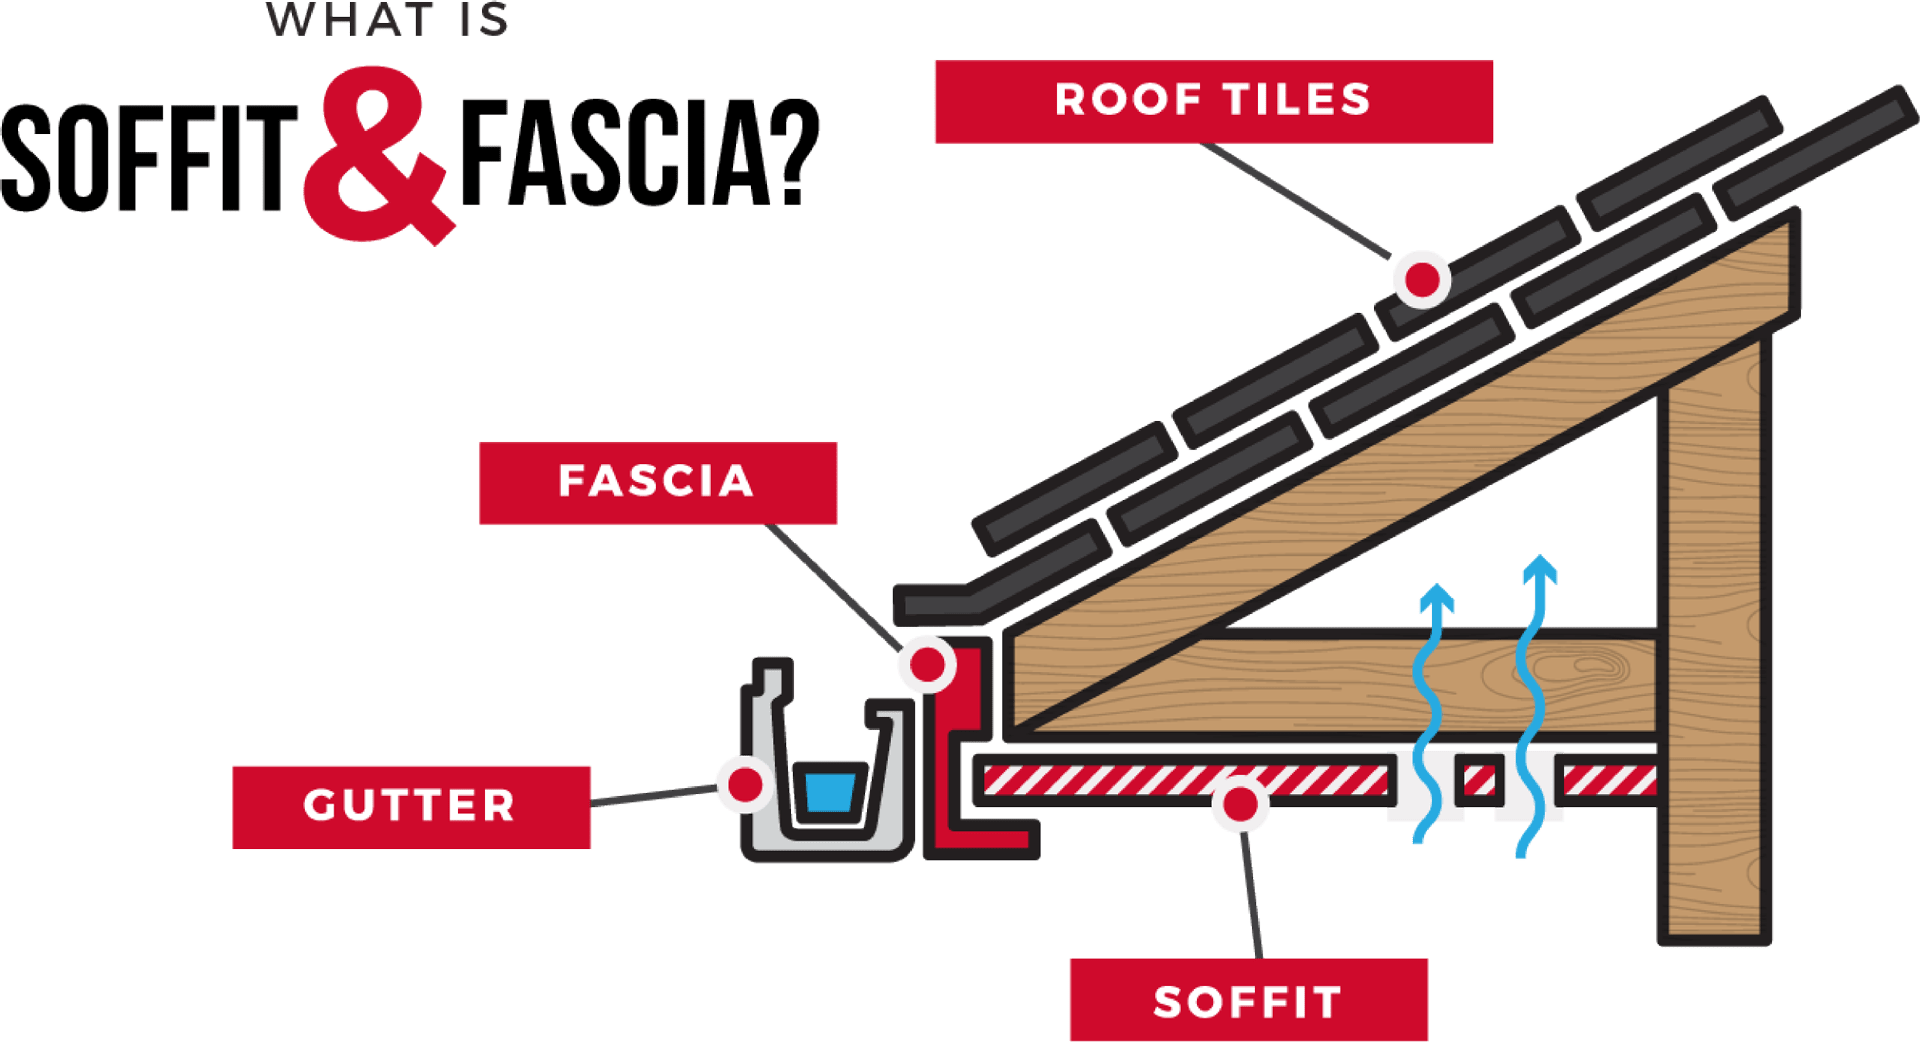 hight resolution of soffit and fascia ferguson roofing st louis roofing exteriors fascia diagram roof